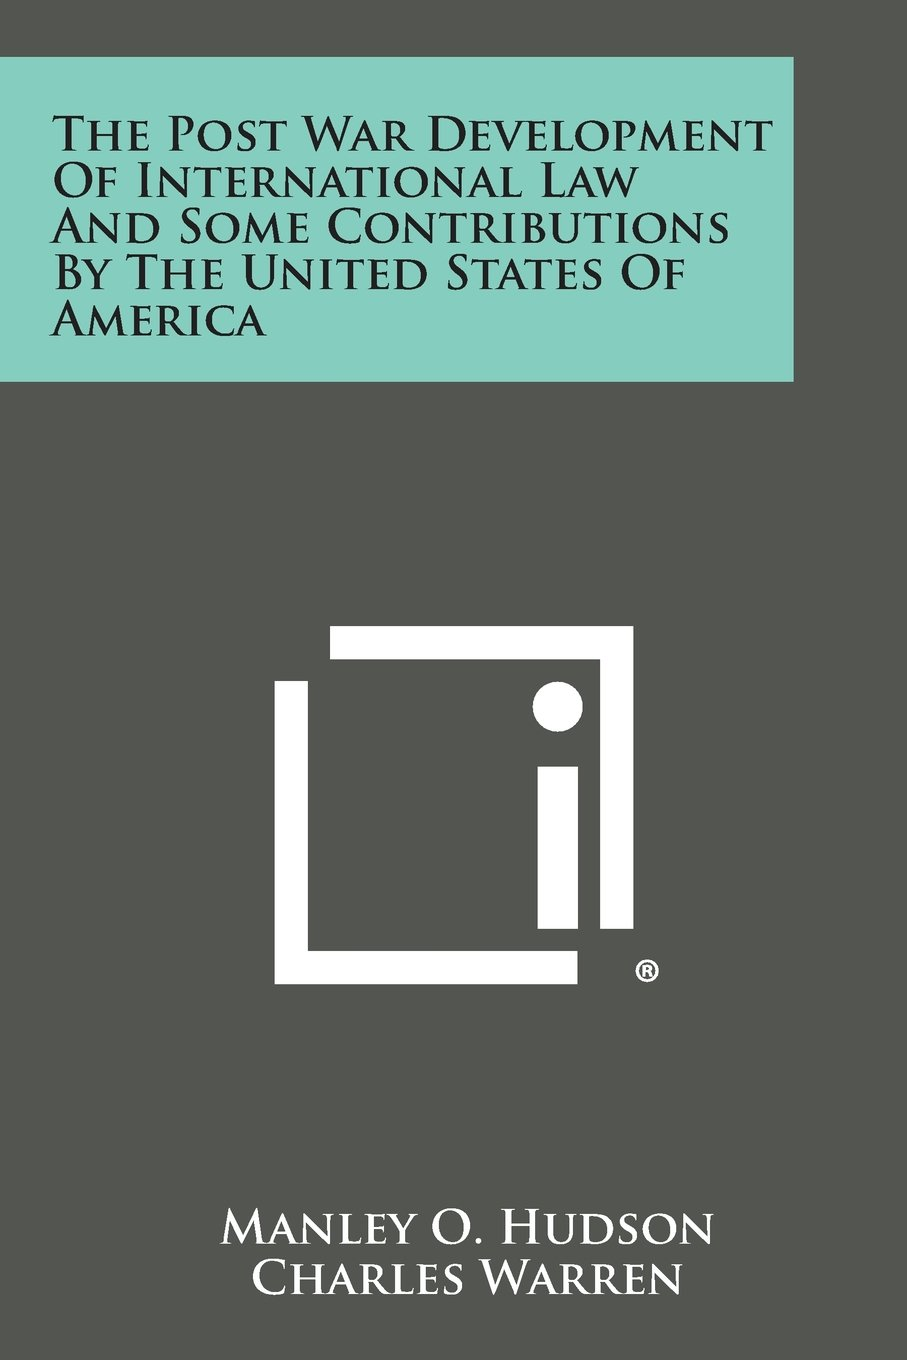 Download The Post War Development of International Law and Some Contributions by the United States of America PDF